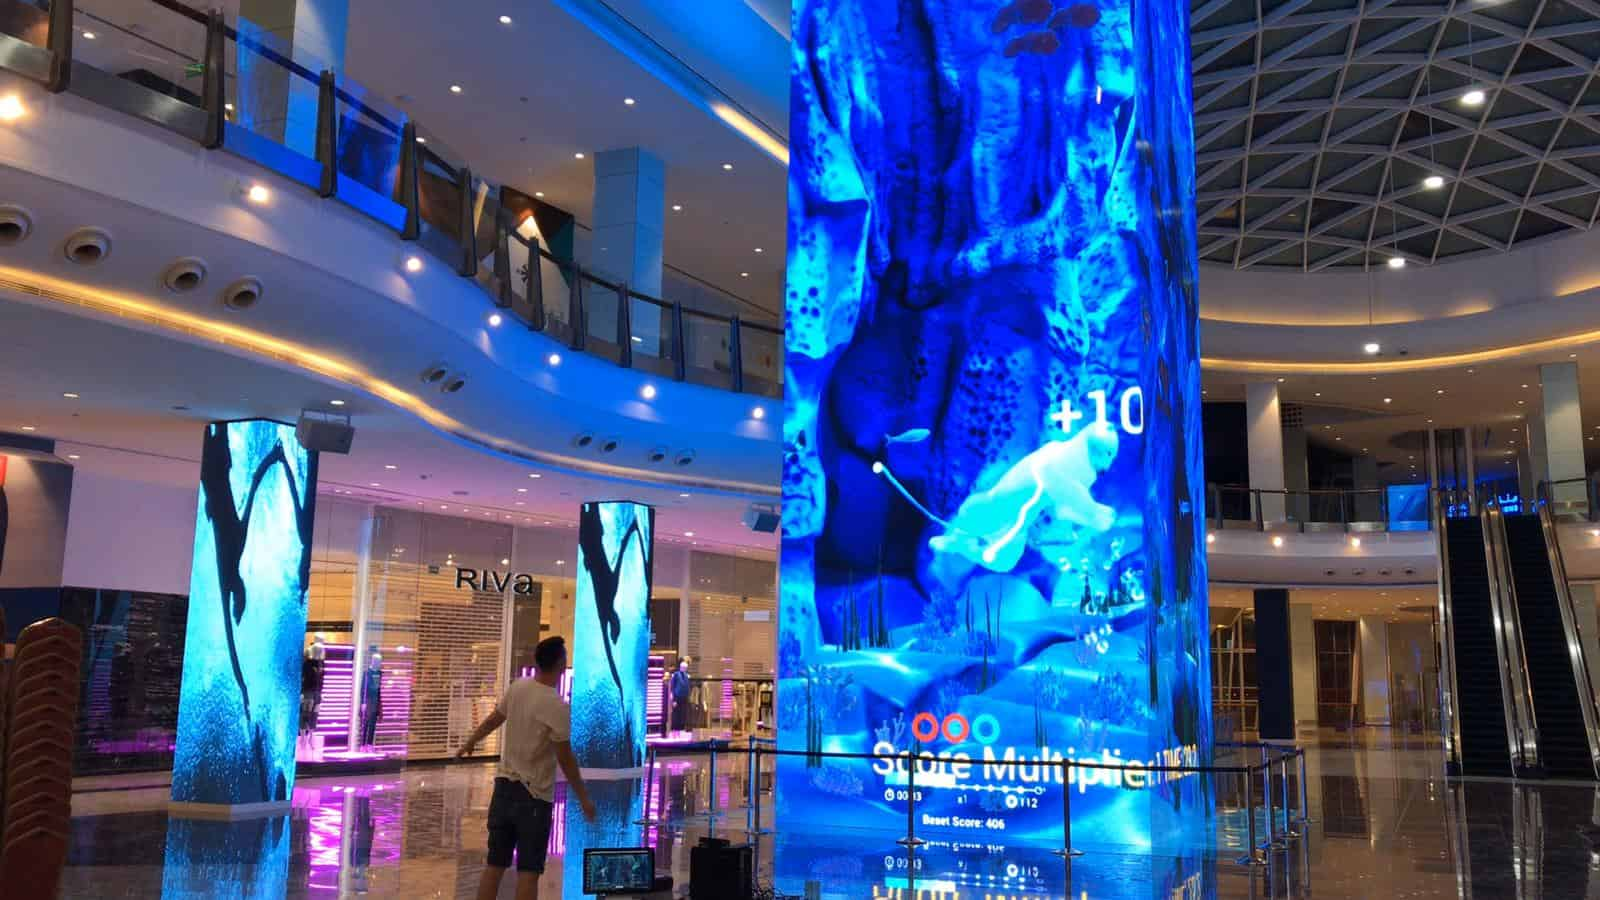 BIGGEST LED TOWER INSTALLATION AT MUSCAT GRAND MALL